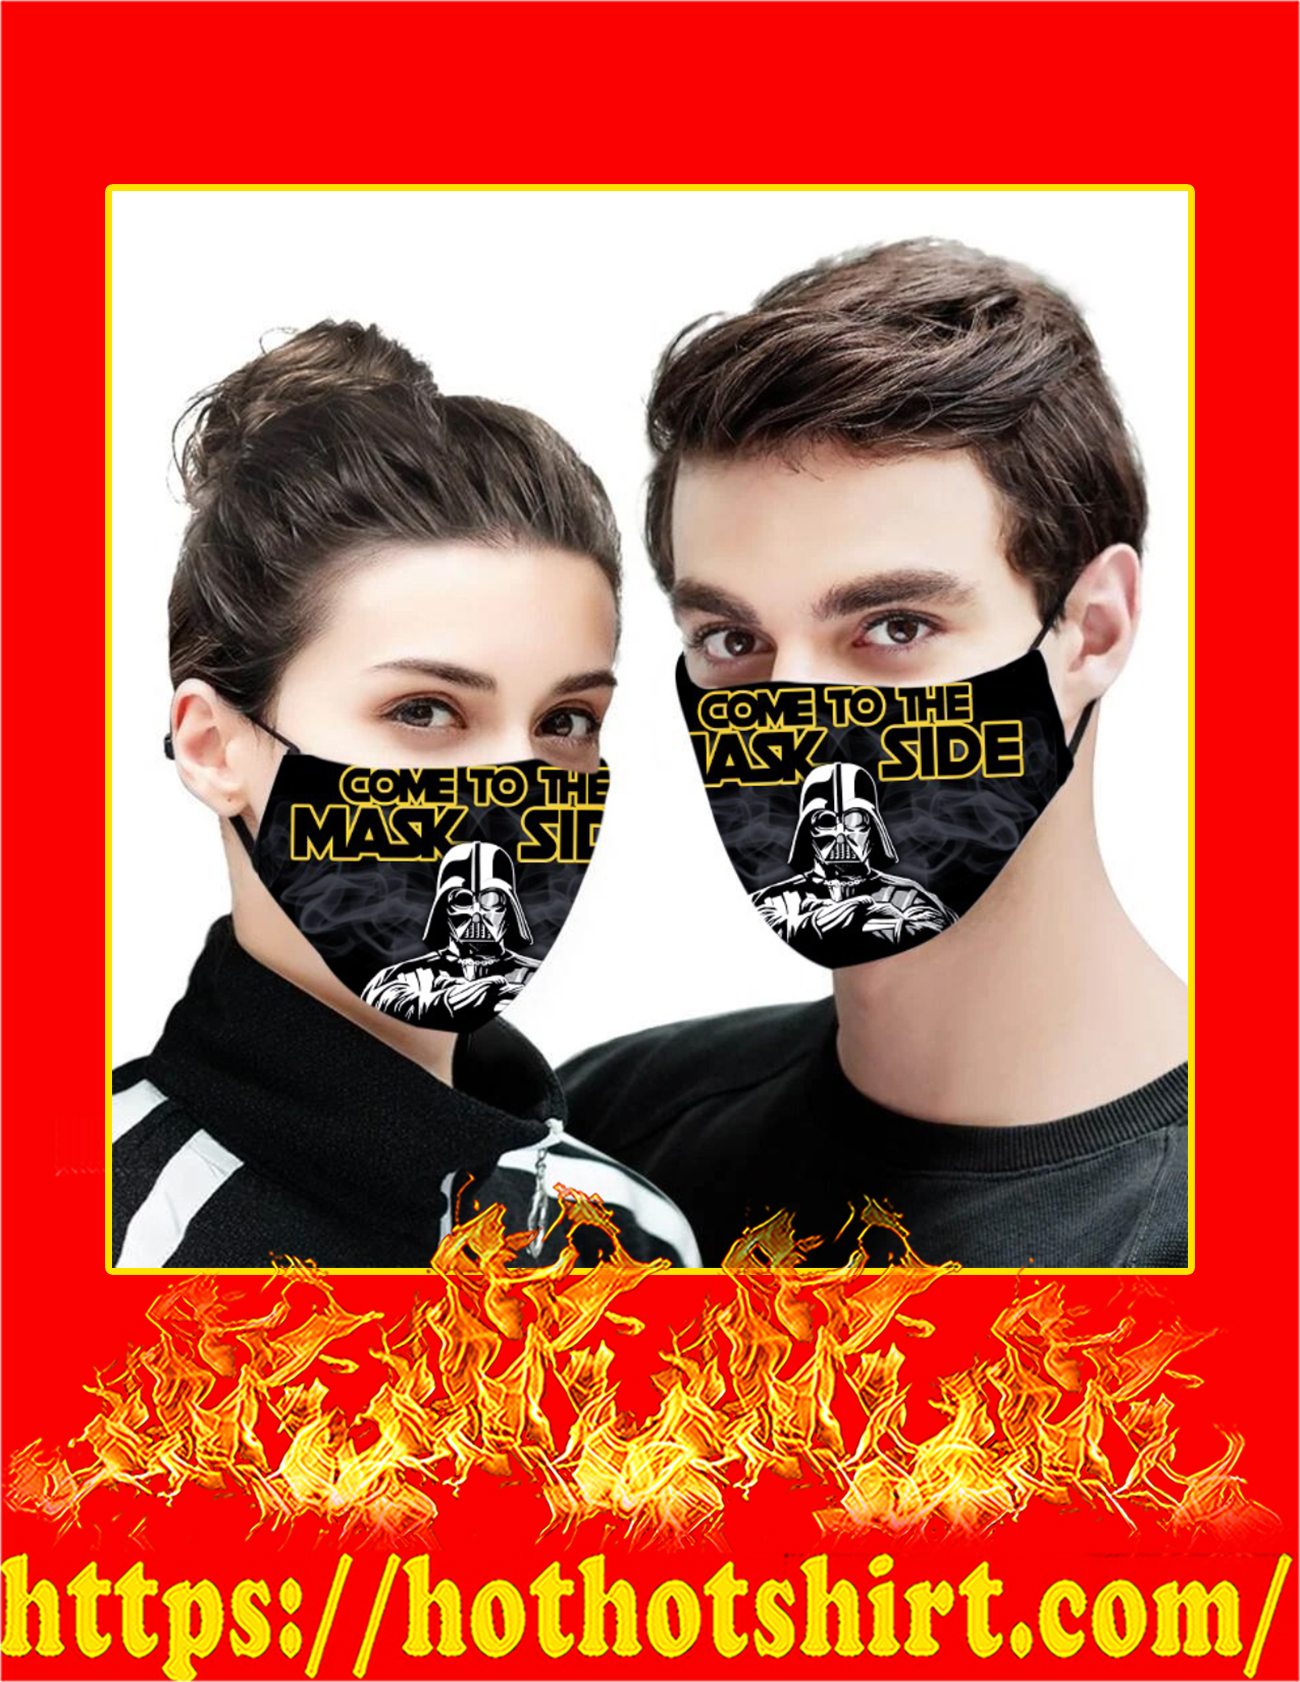 Come to the mask side Star wars face mask - deail